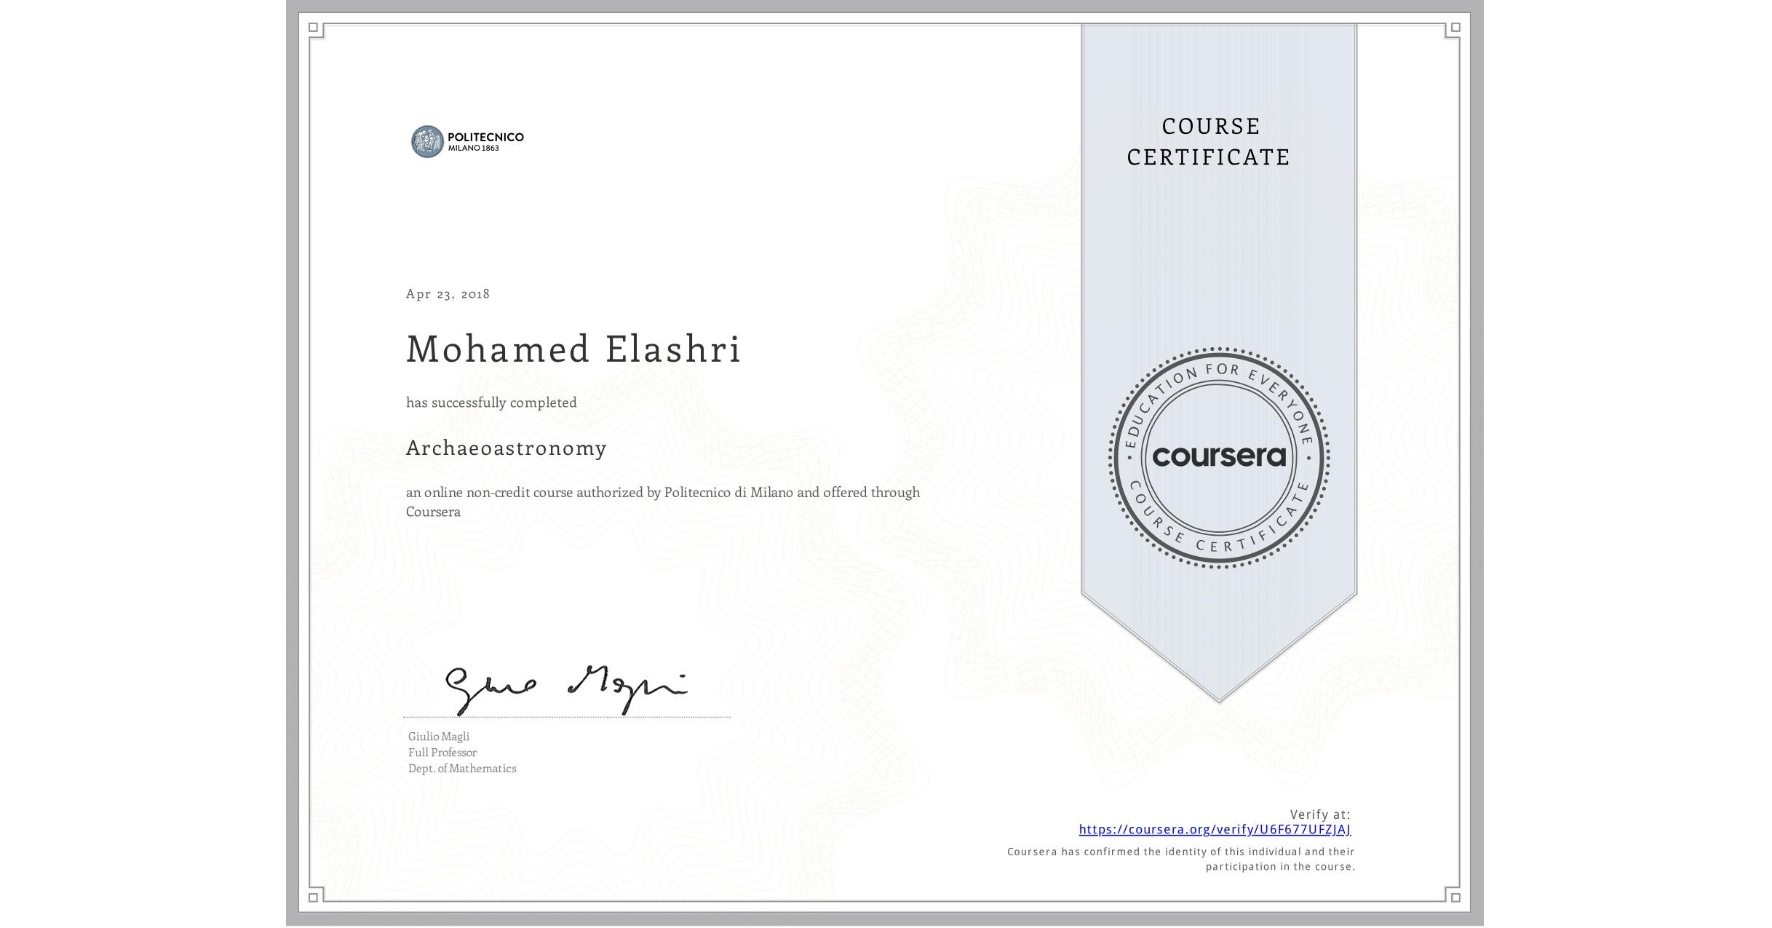 View certificate for Mohamed Elashri, Archaeoastronomy, an online non-credit course authorized by Politecnico di Milano and offered through Coursera